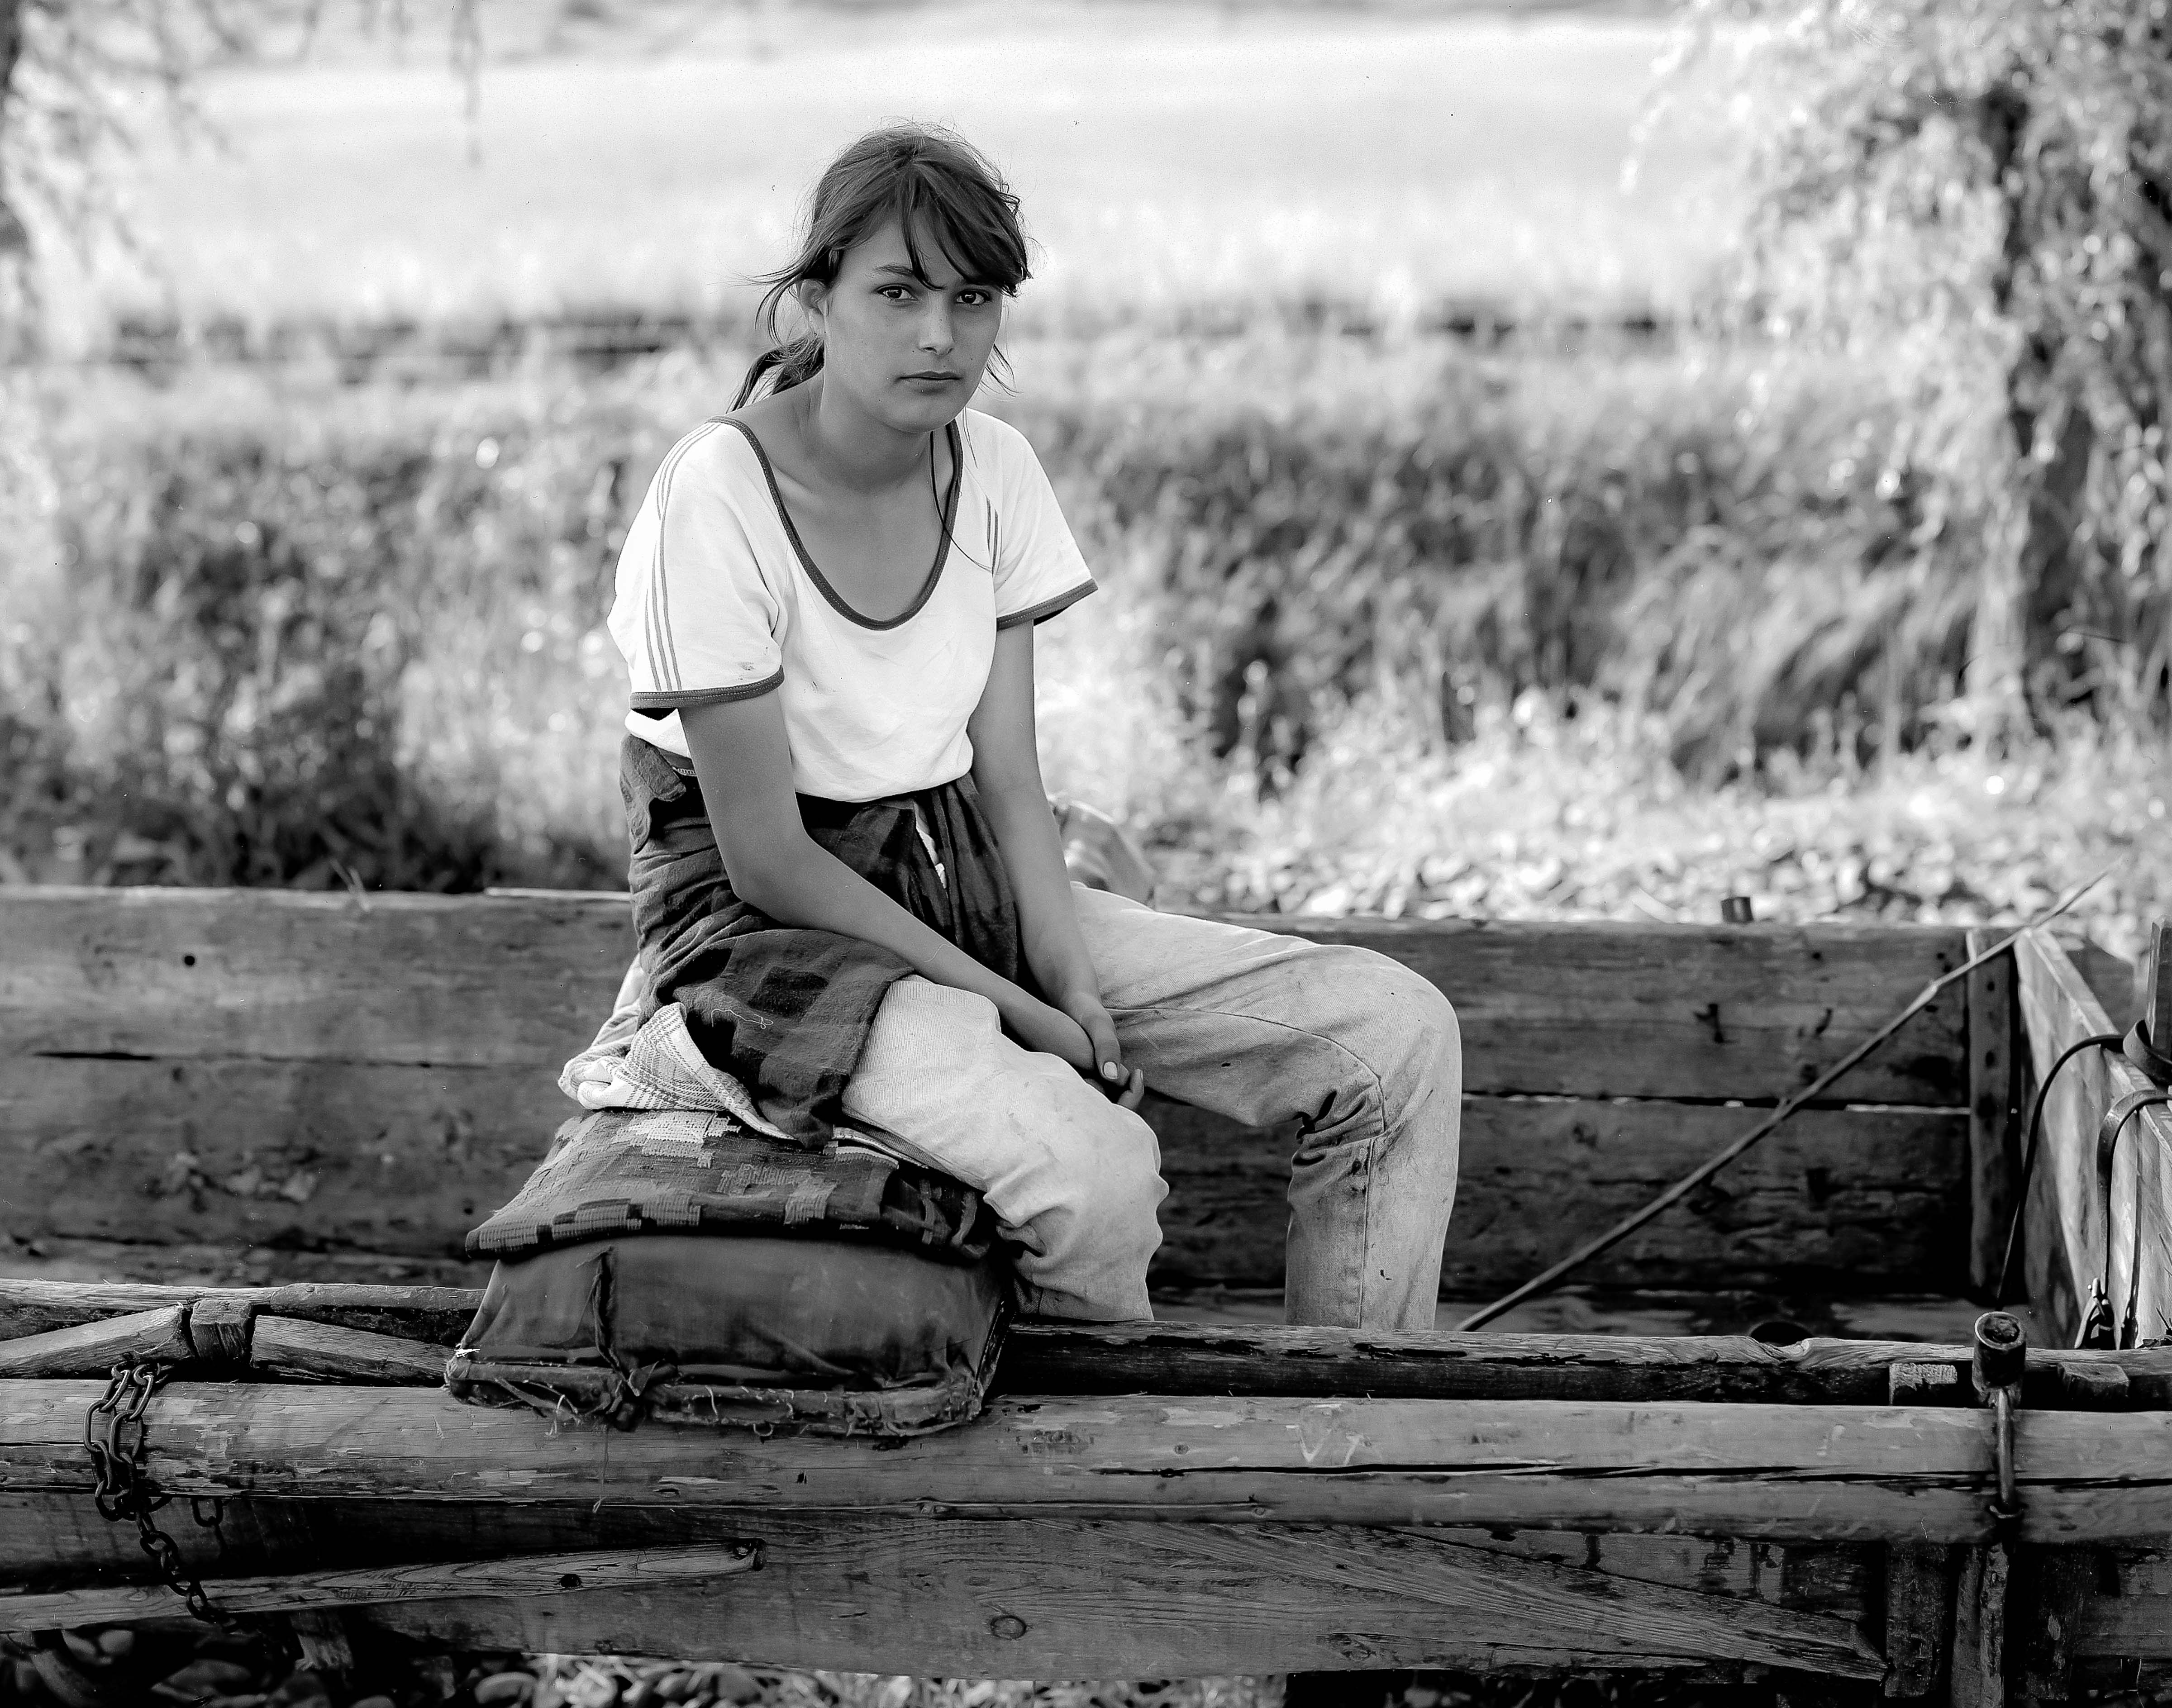 Romania, Farm Girl Sitting On Wagon, 1997